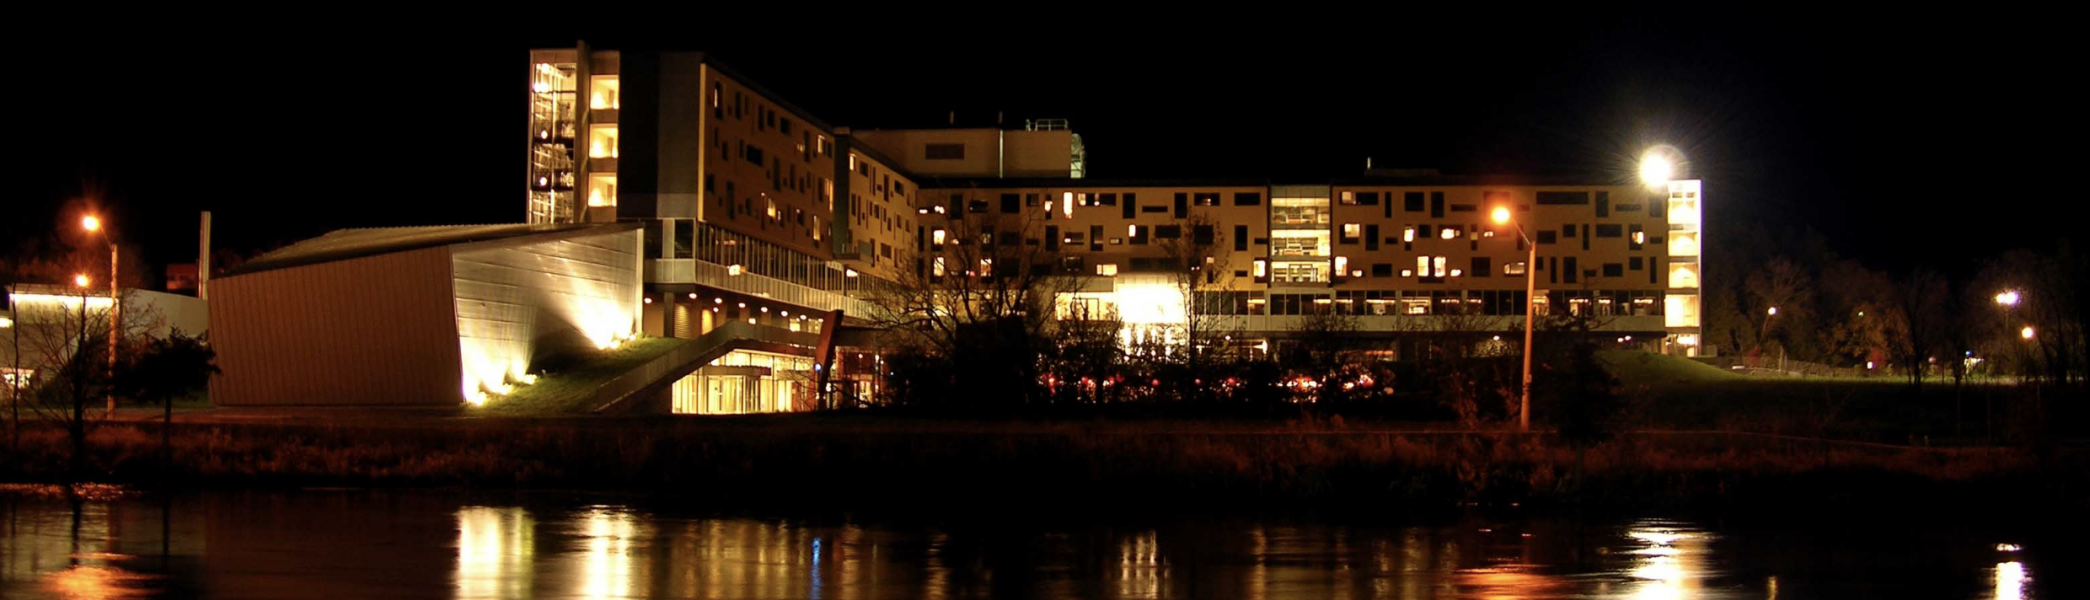 Gzowski College at night with lights reflecting off the Otonabee River